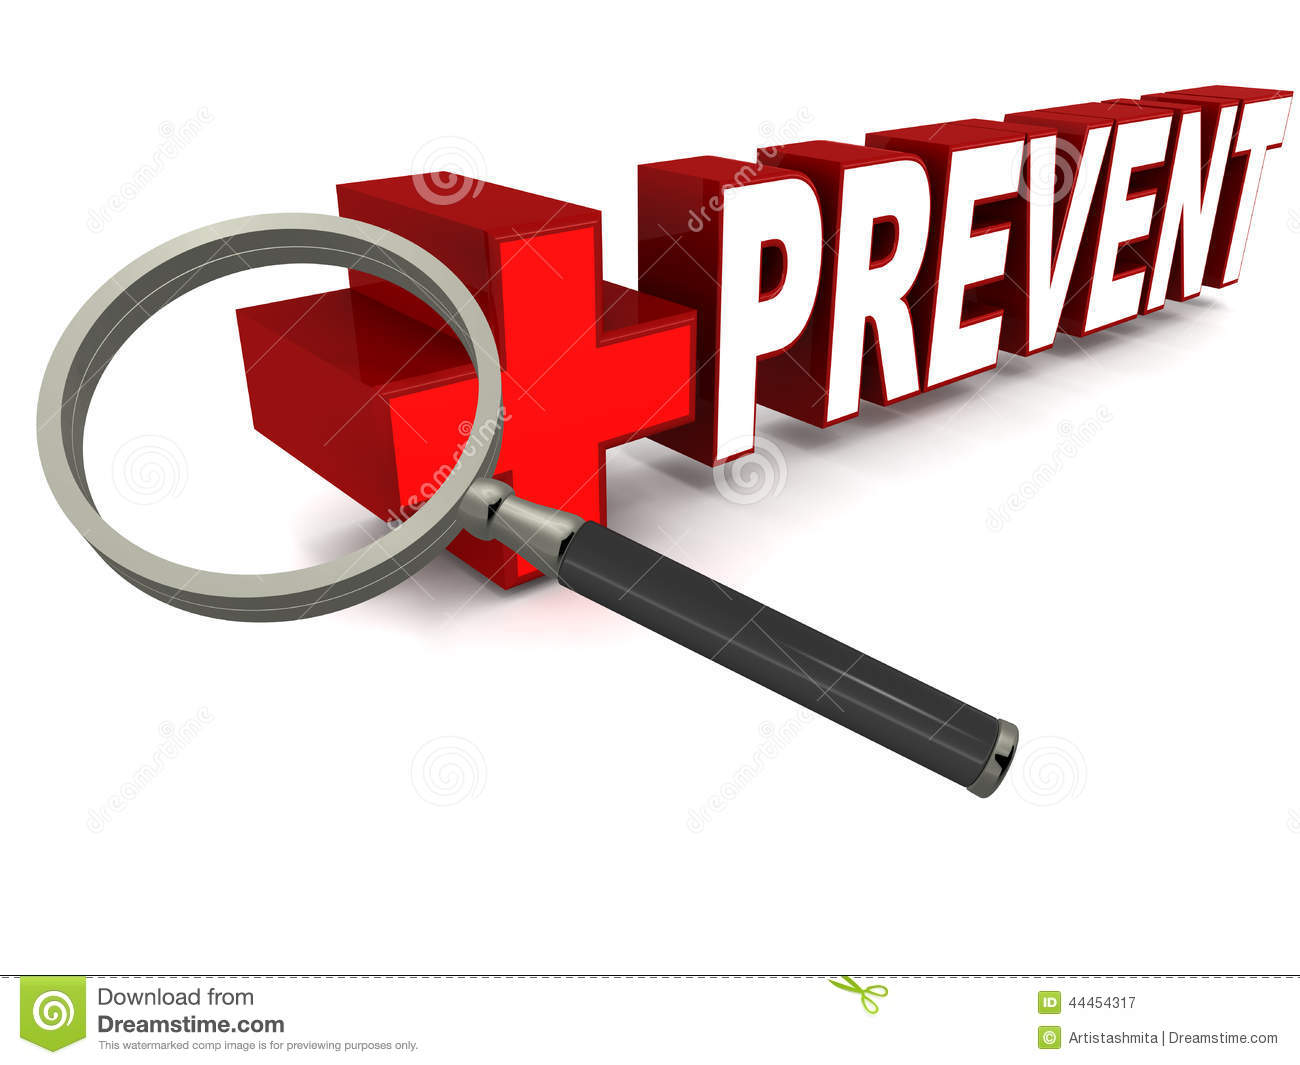 Crime prevention clipart images.